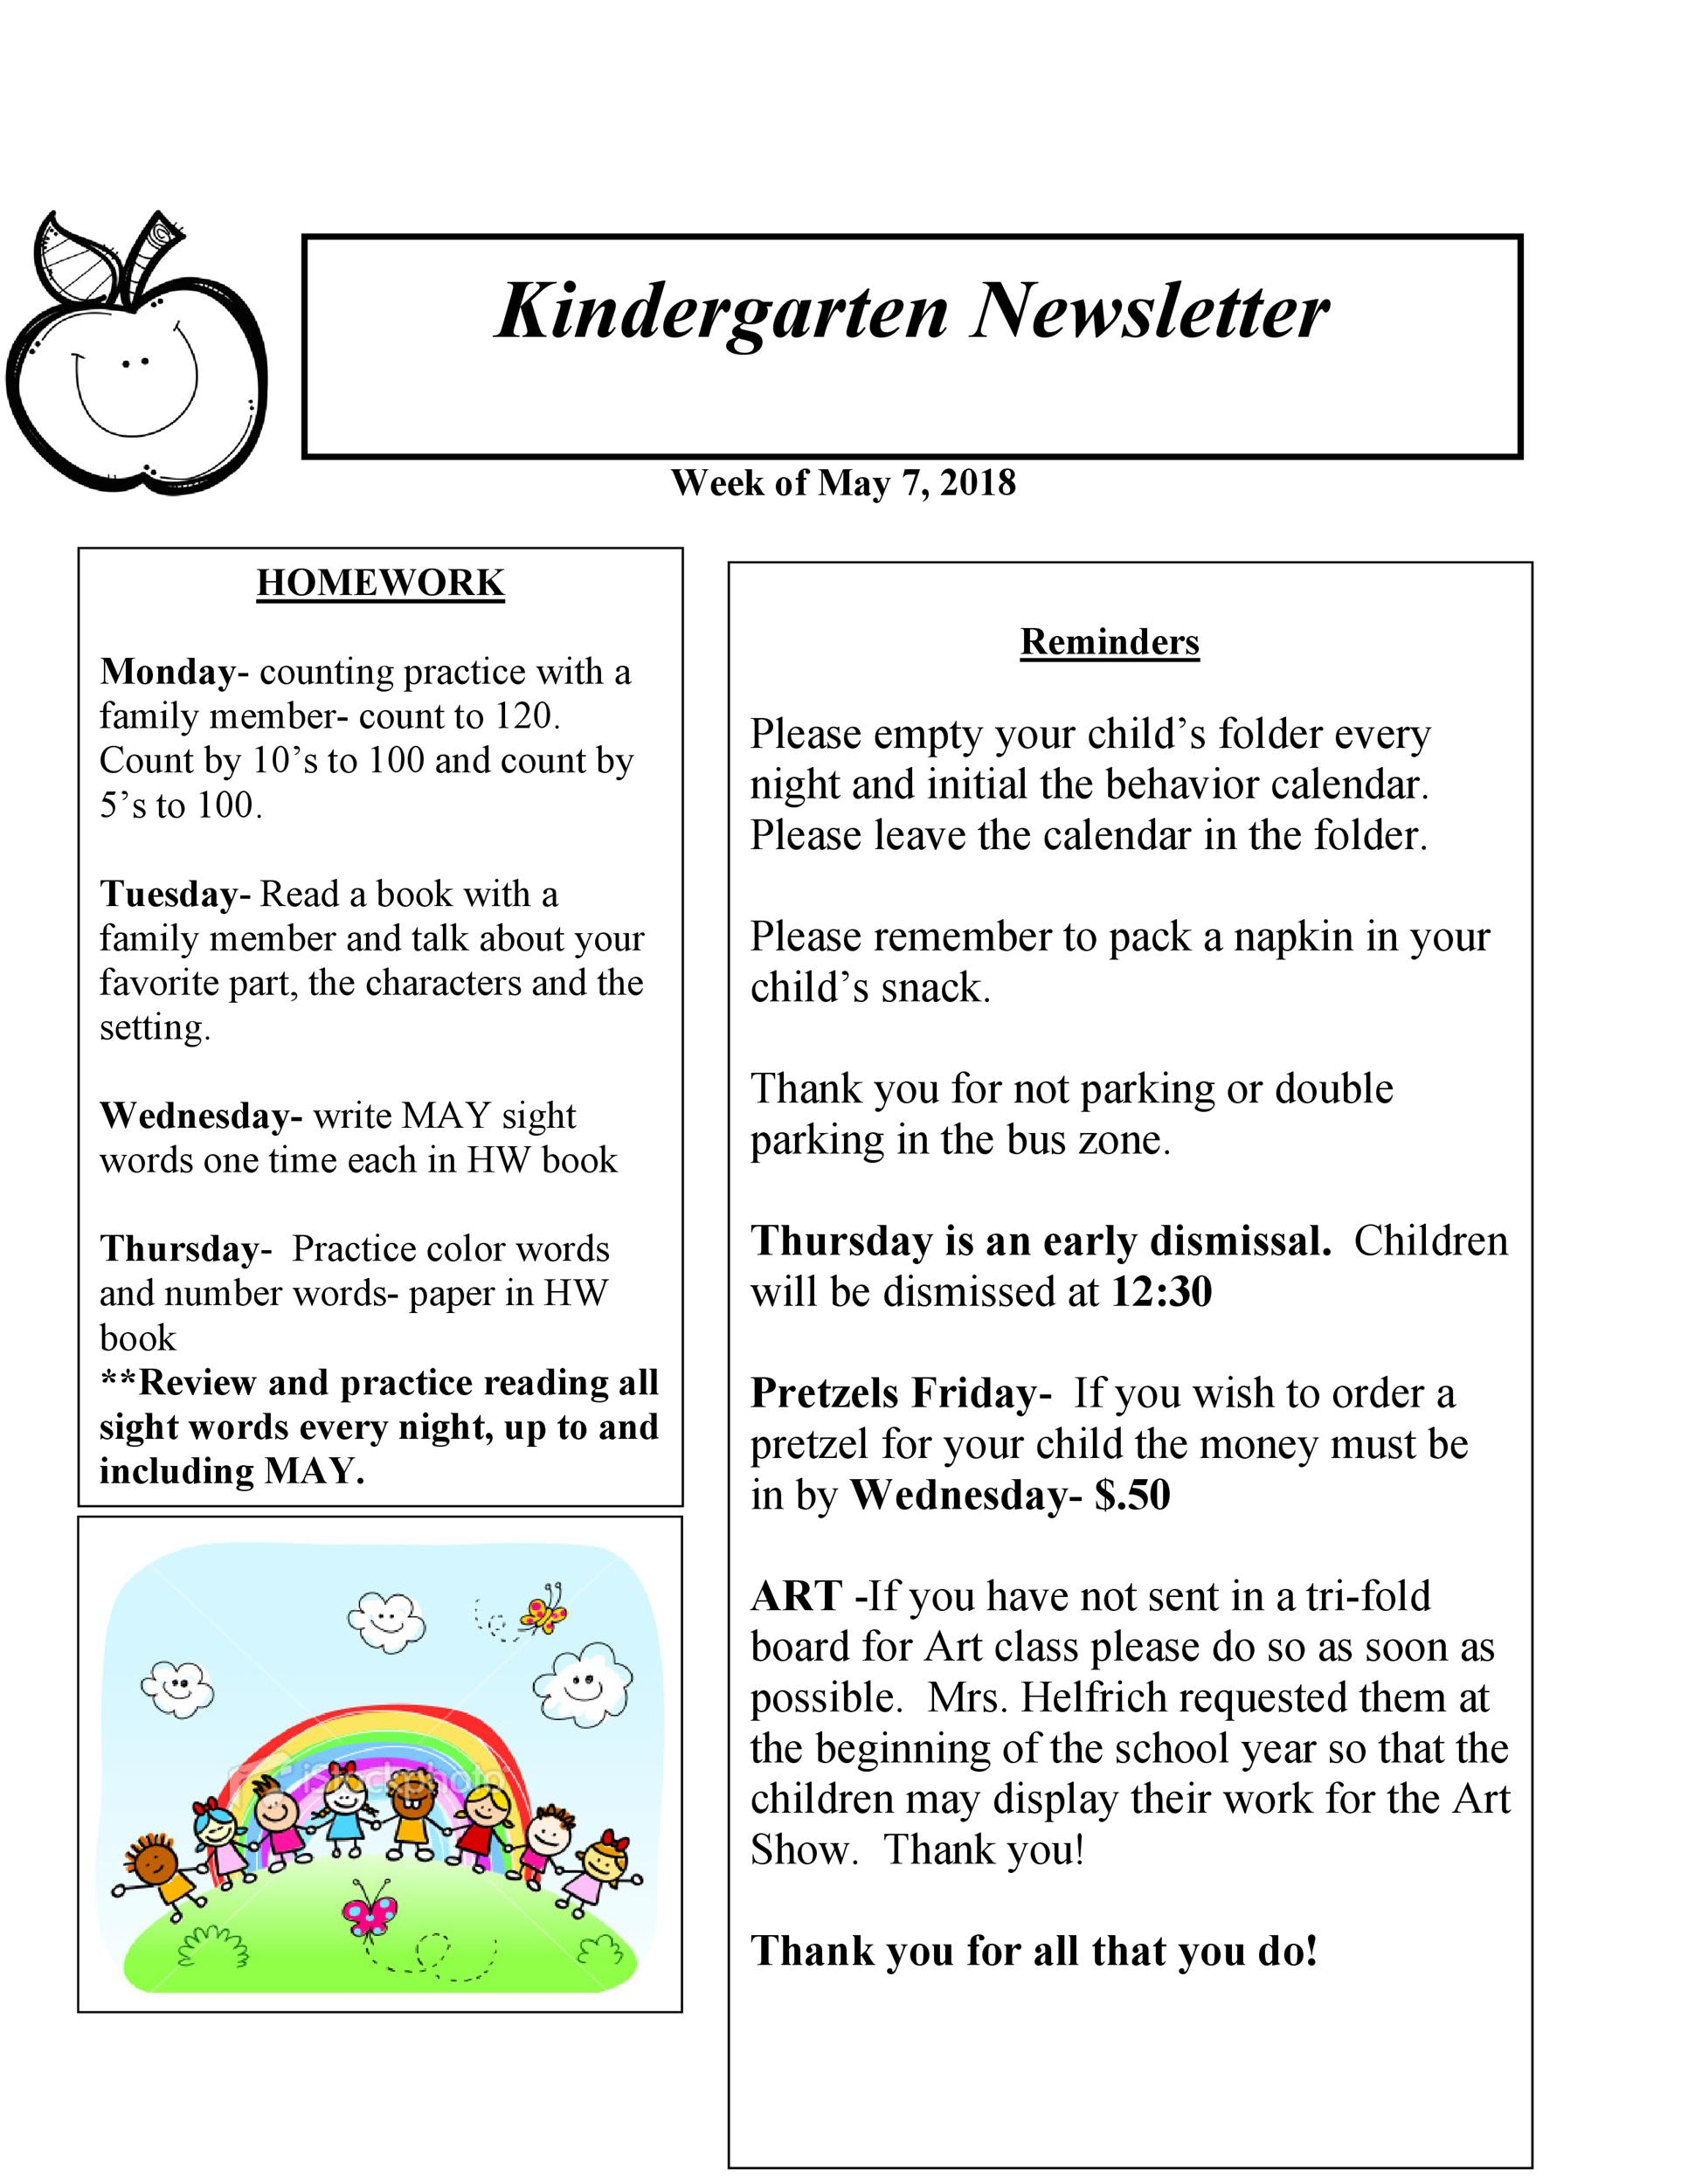 Free preschool newsletter template 16